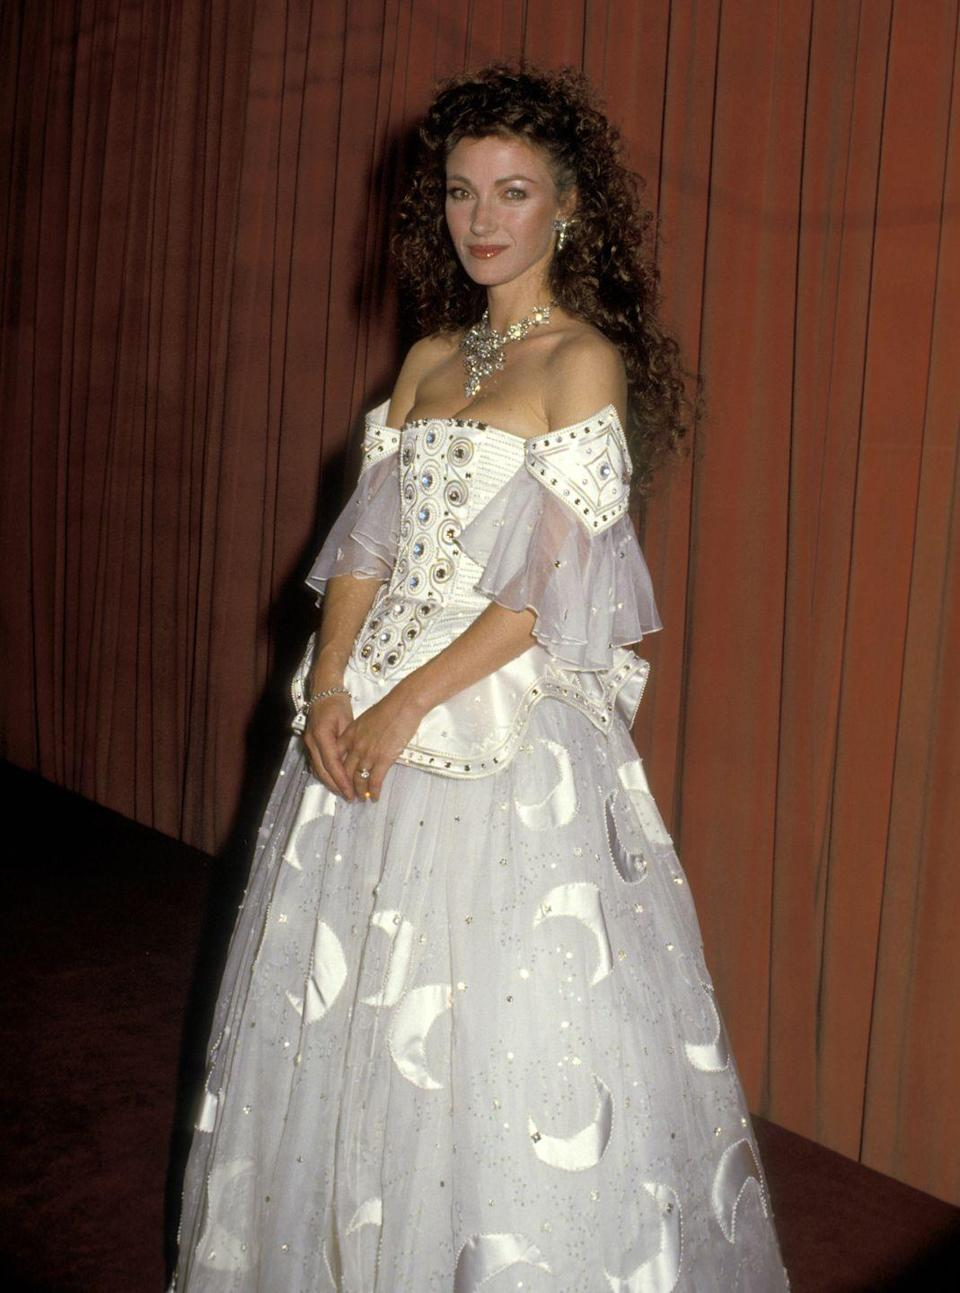 <p>In 1987, this Bond girl was ethereal in this off-the-shoulder gown featuring moon and star embroidery. </p>